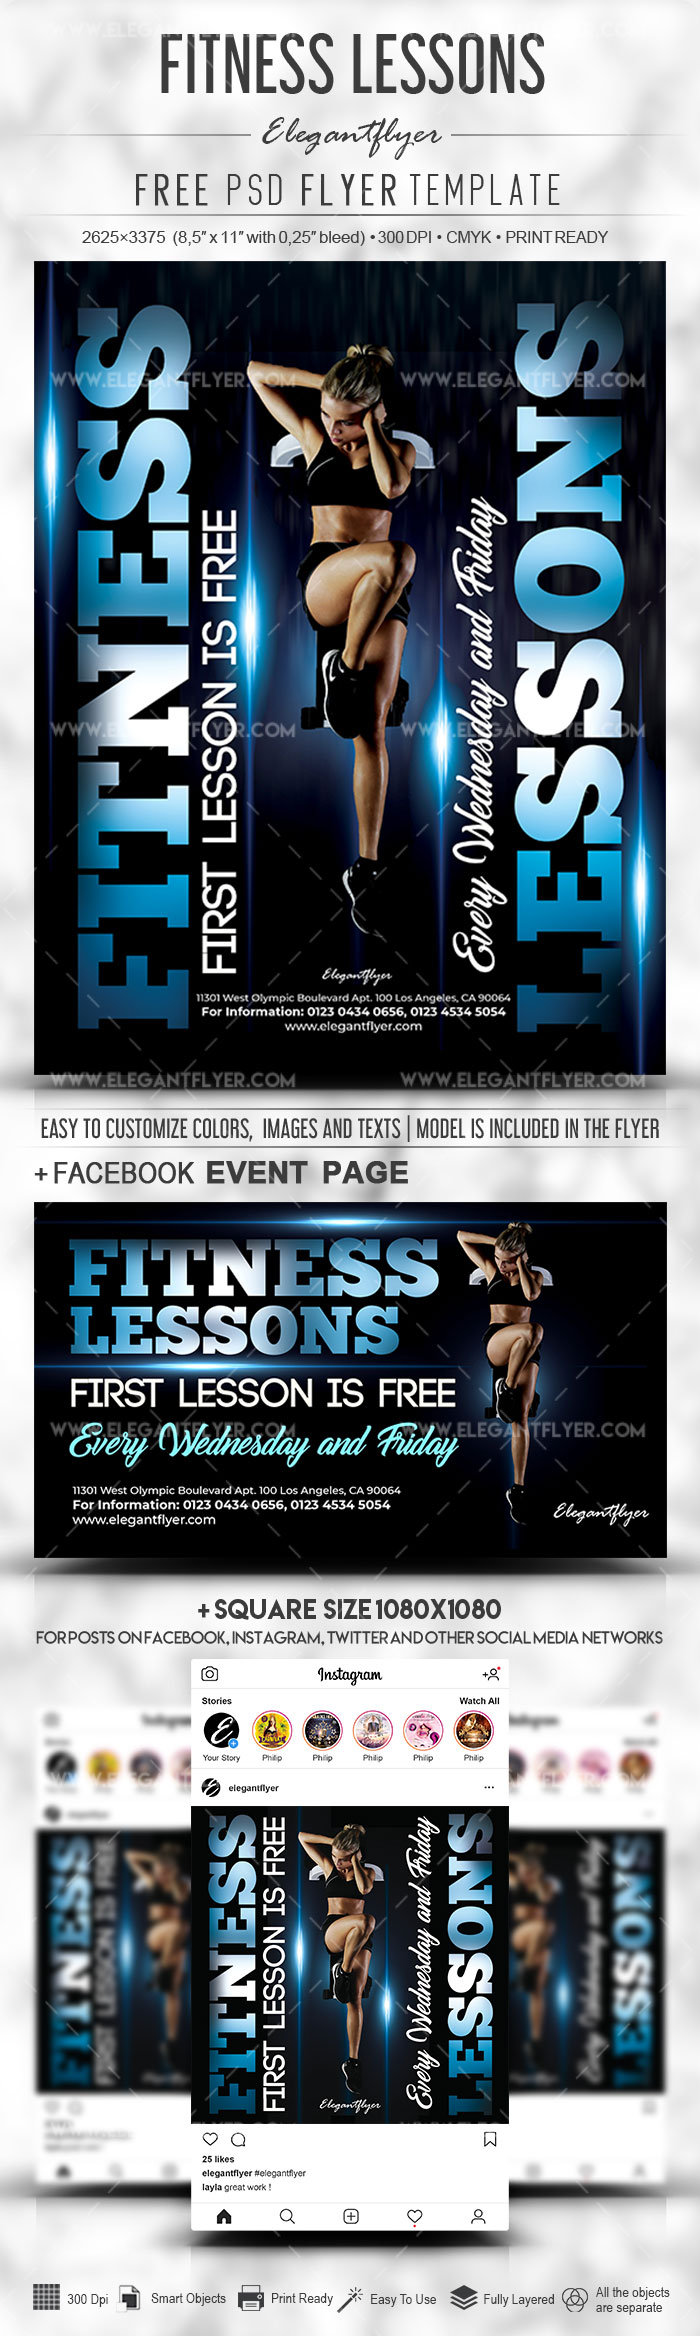 Fitness Lessons – Free PSD Flyer Template + Facebook Cover + Instagram Post